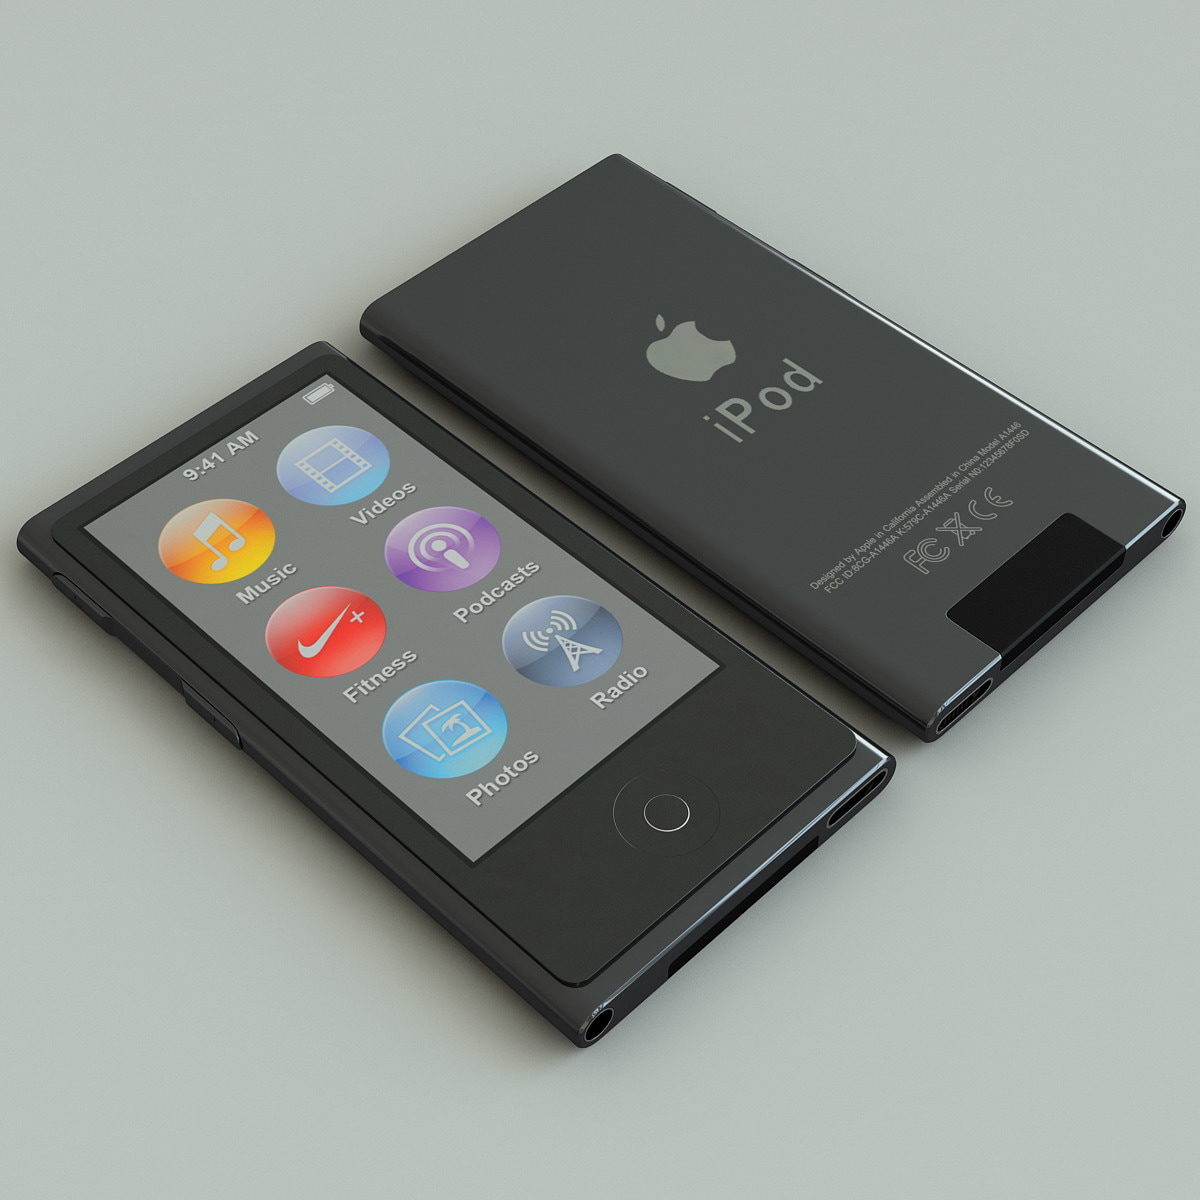 Copy_of_Ipod_Nano_Generation_7th_Black_004.jpg